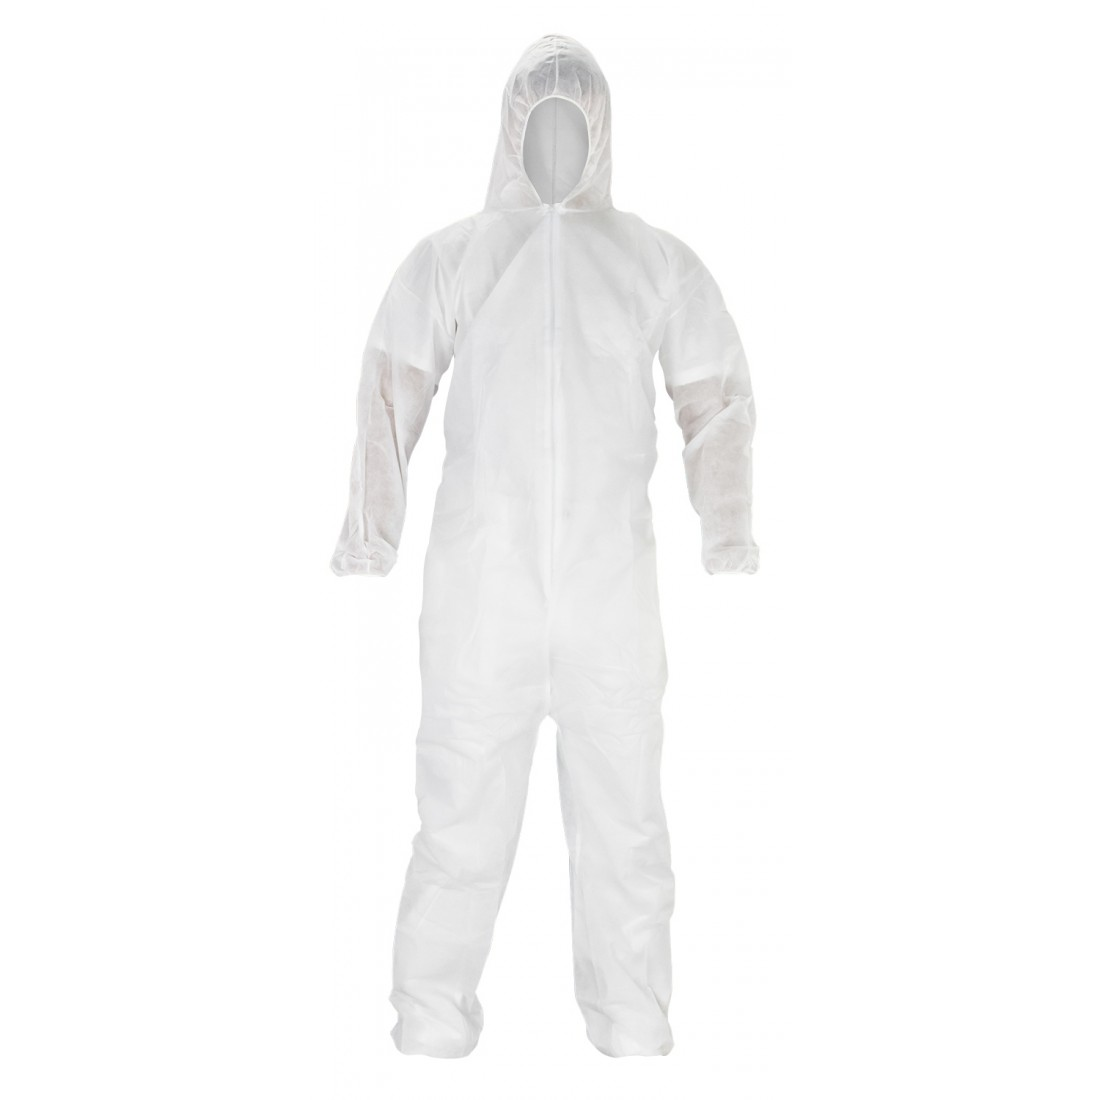 polypropylene_disposable_coveralls_sas_safety